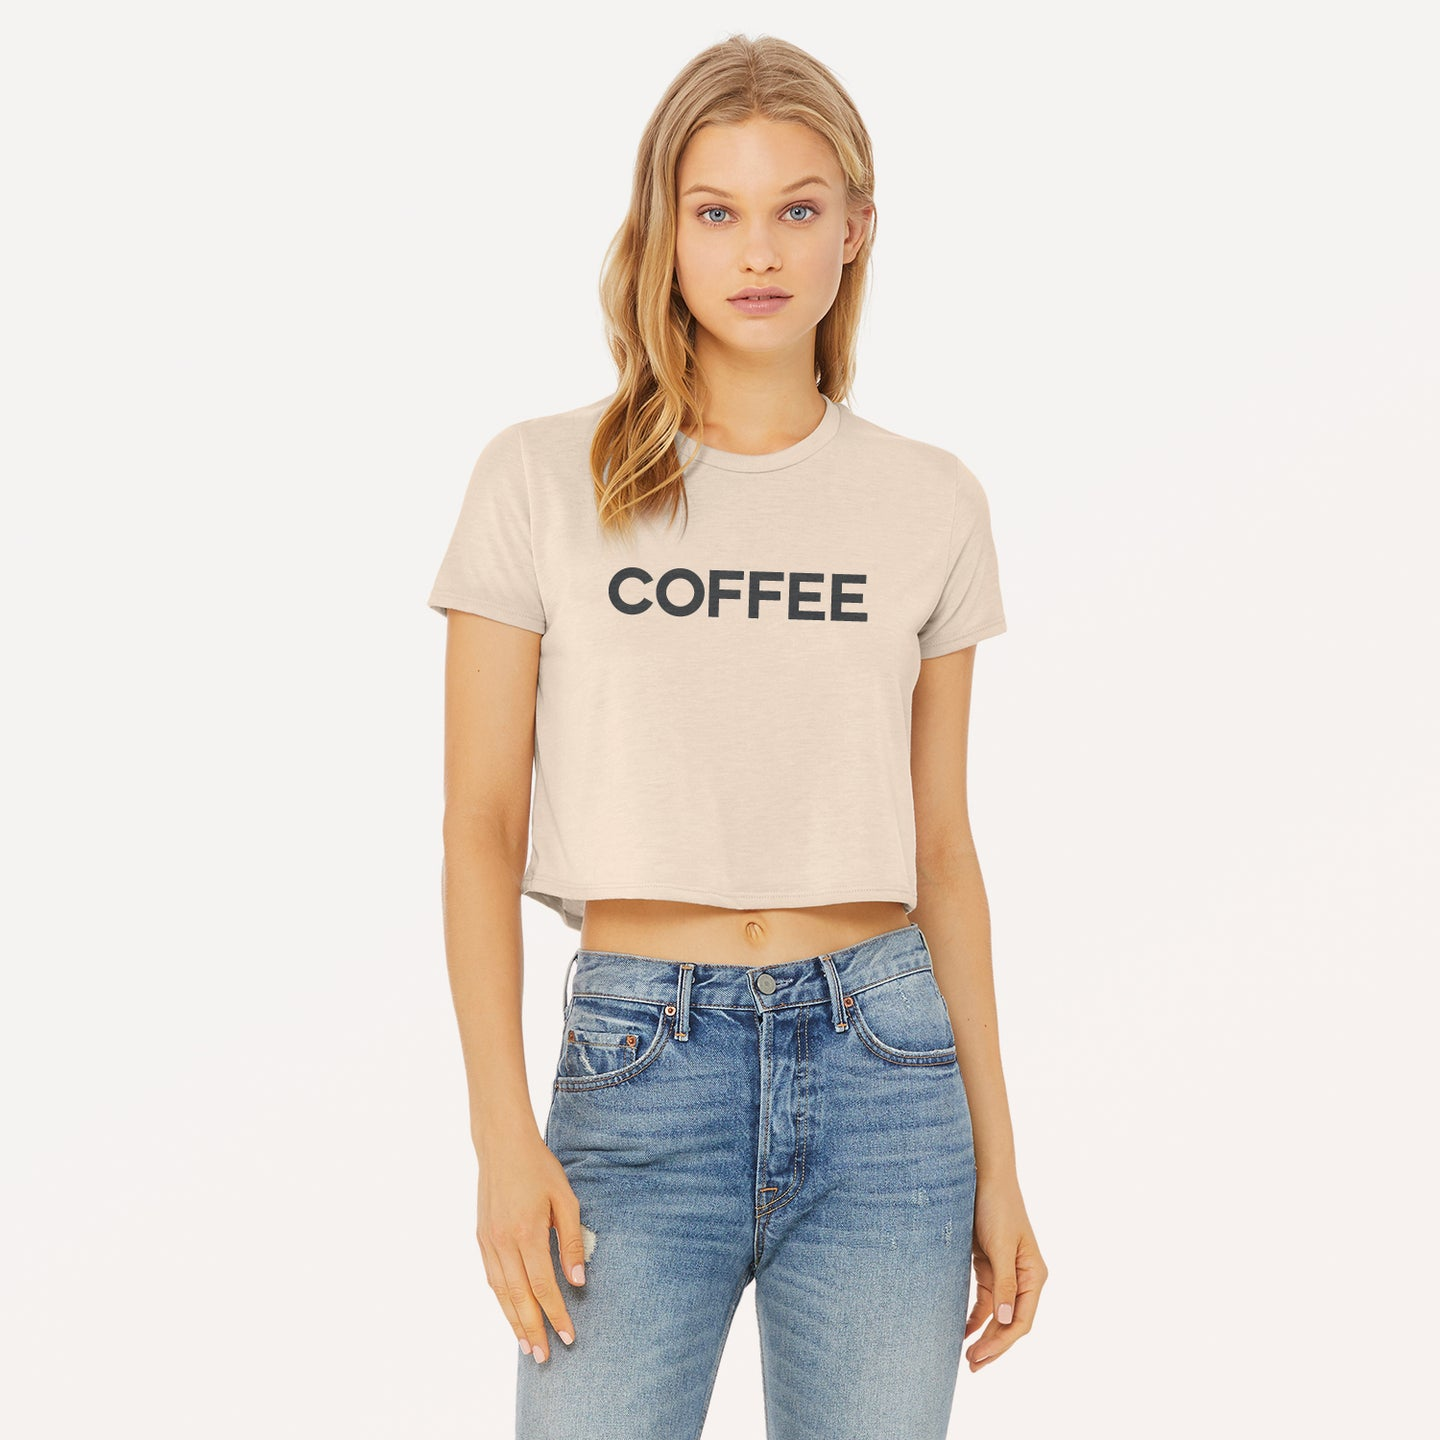 Coffee graphic screenprinted on a heather dust women's flowy cropped t-shirt.